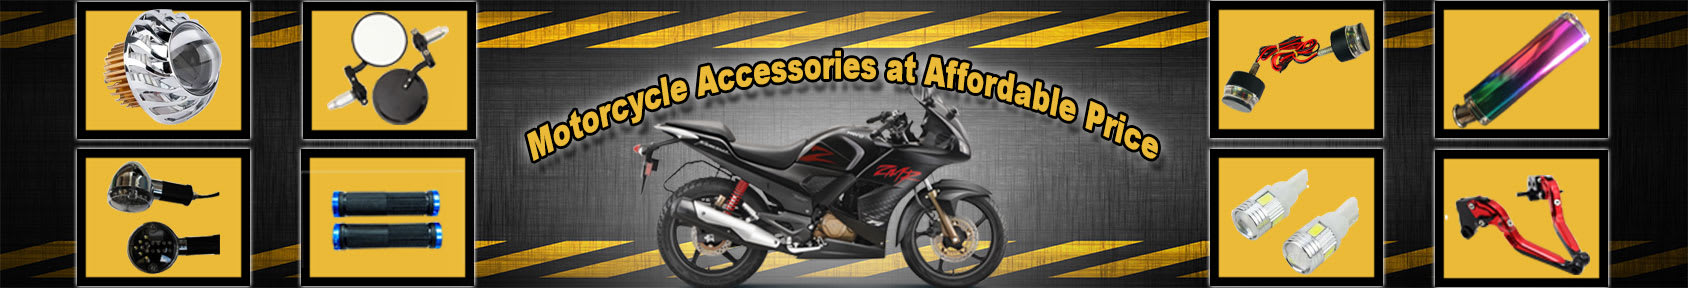 Special offers on Genuine Motorcycle Spare Parts And Accessories - Buy universal accessories at affordable price